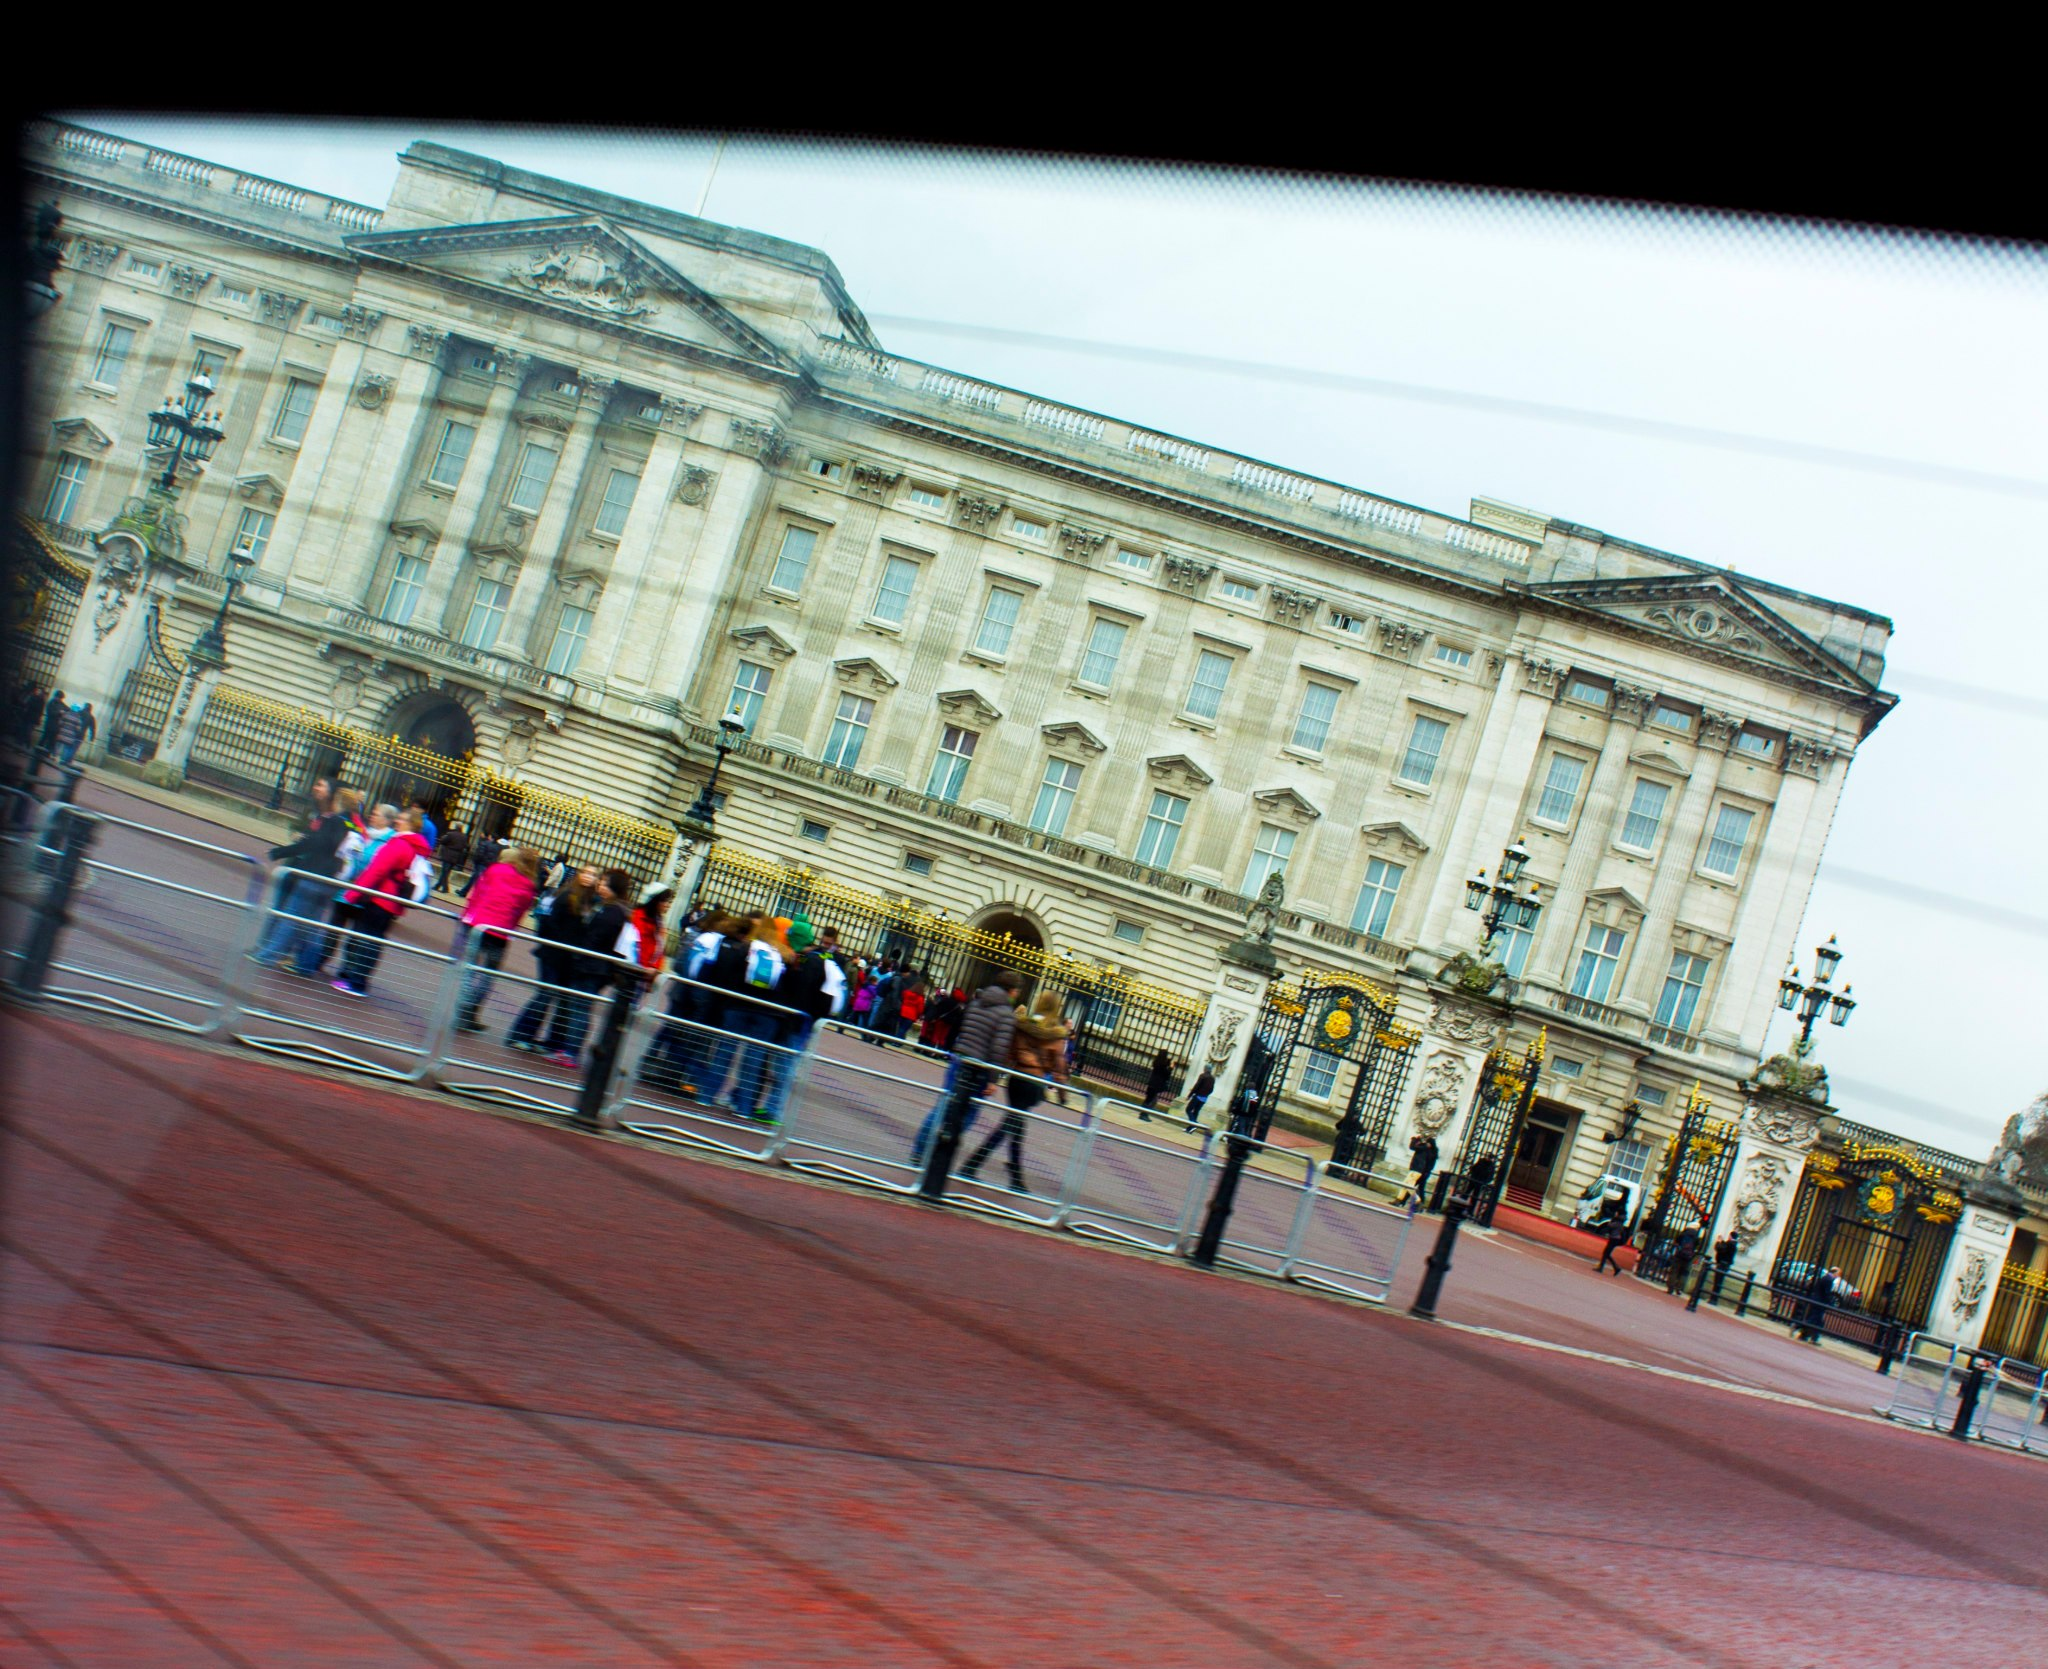 Buckingham Palace from the taxi window!